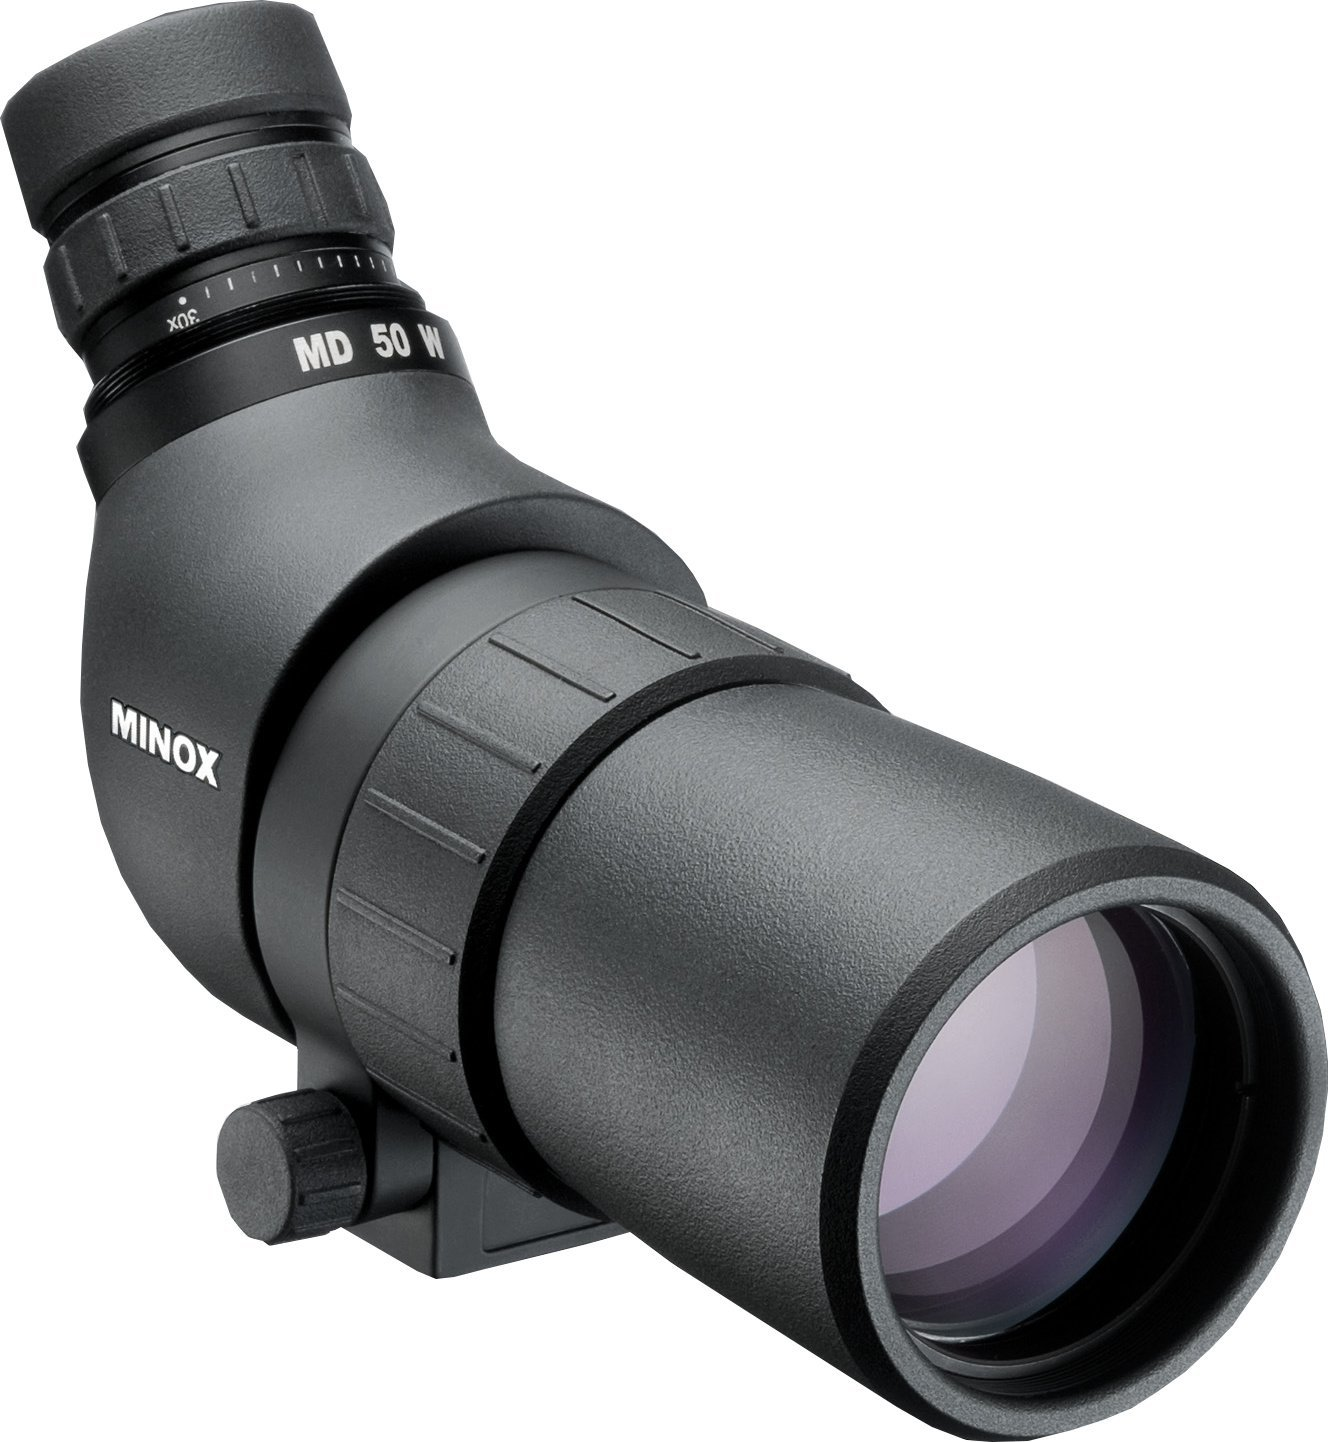 MINOX MD 50 W 16-30x Waterproof Spotting Scope